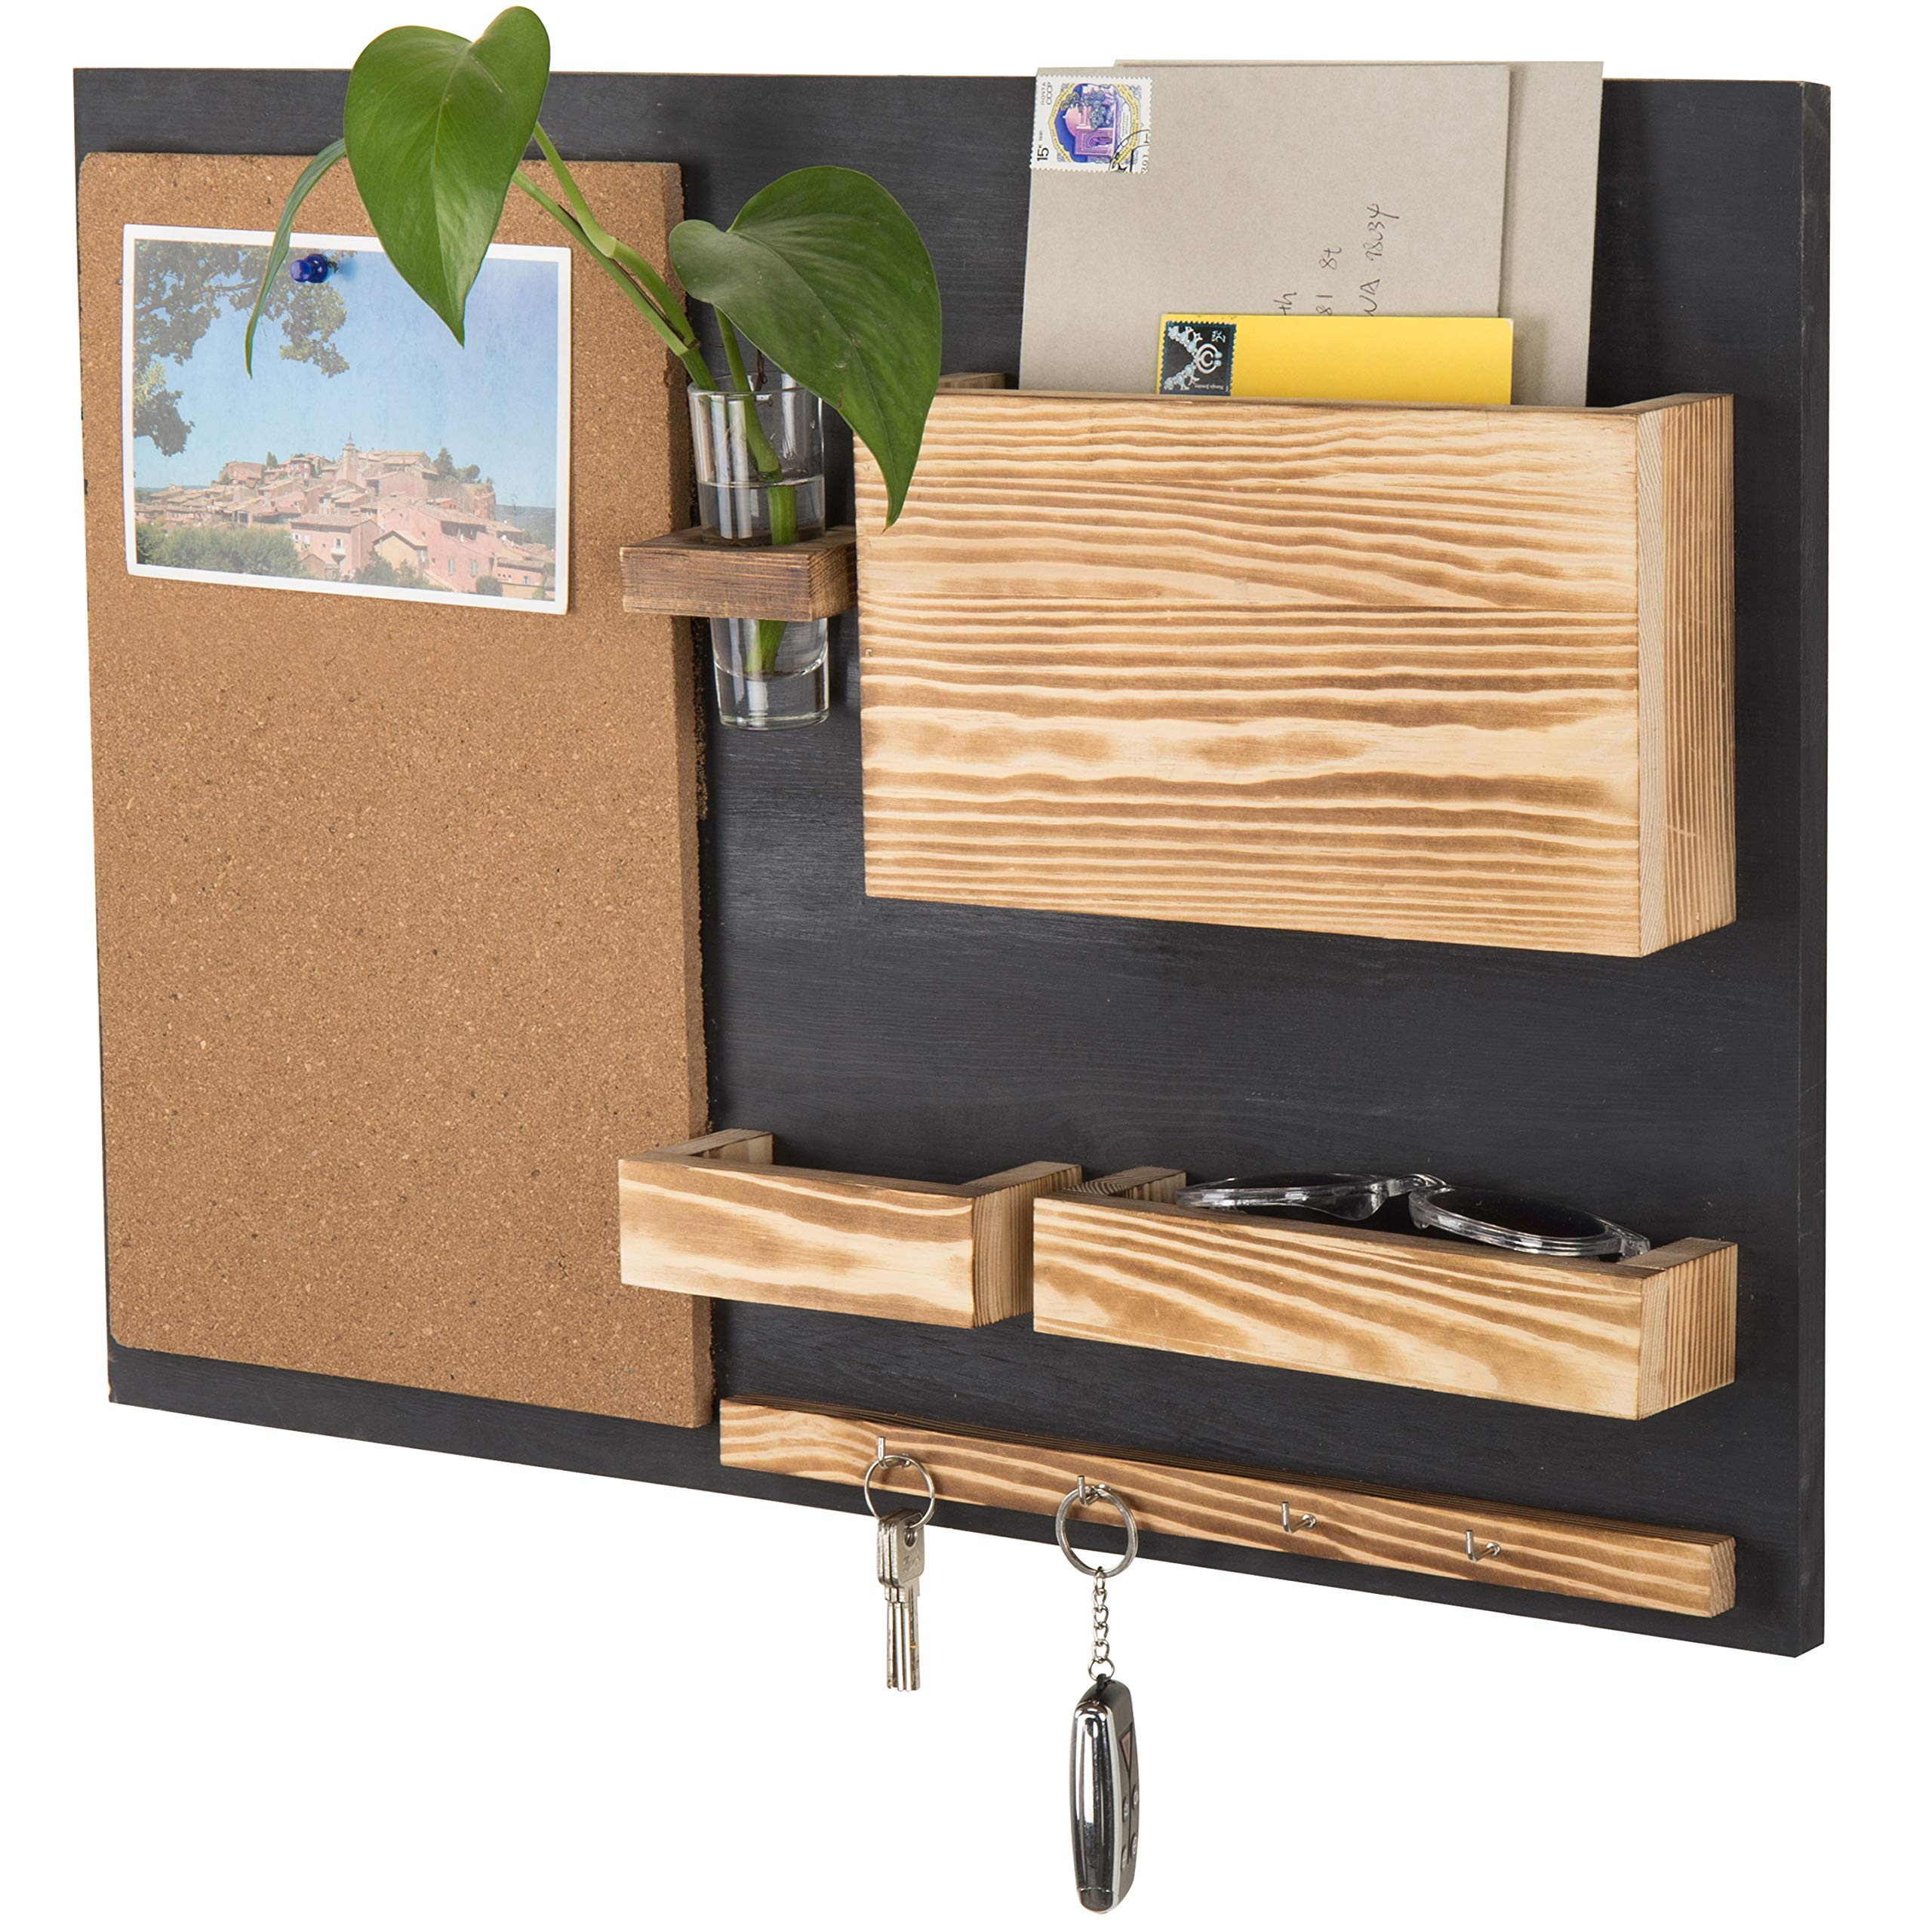 MyGift Wall-Mounted Organizer with Cork Bulletin Board, Mail Holder, Key Hooks, Flower Vase by MyGift